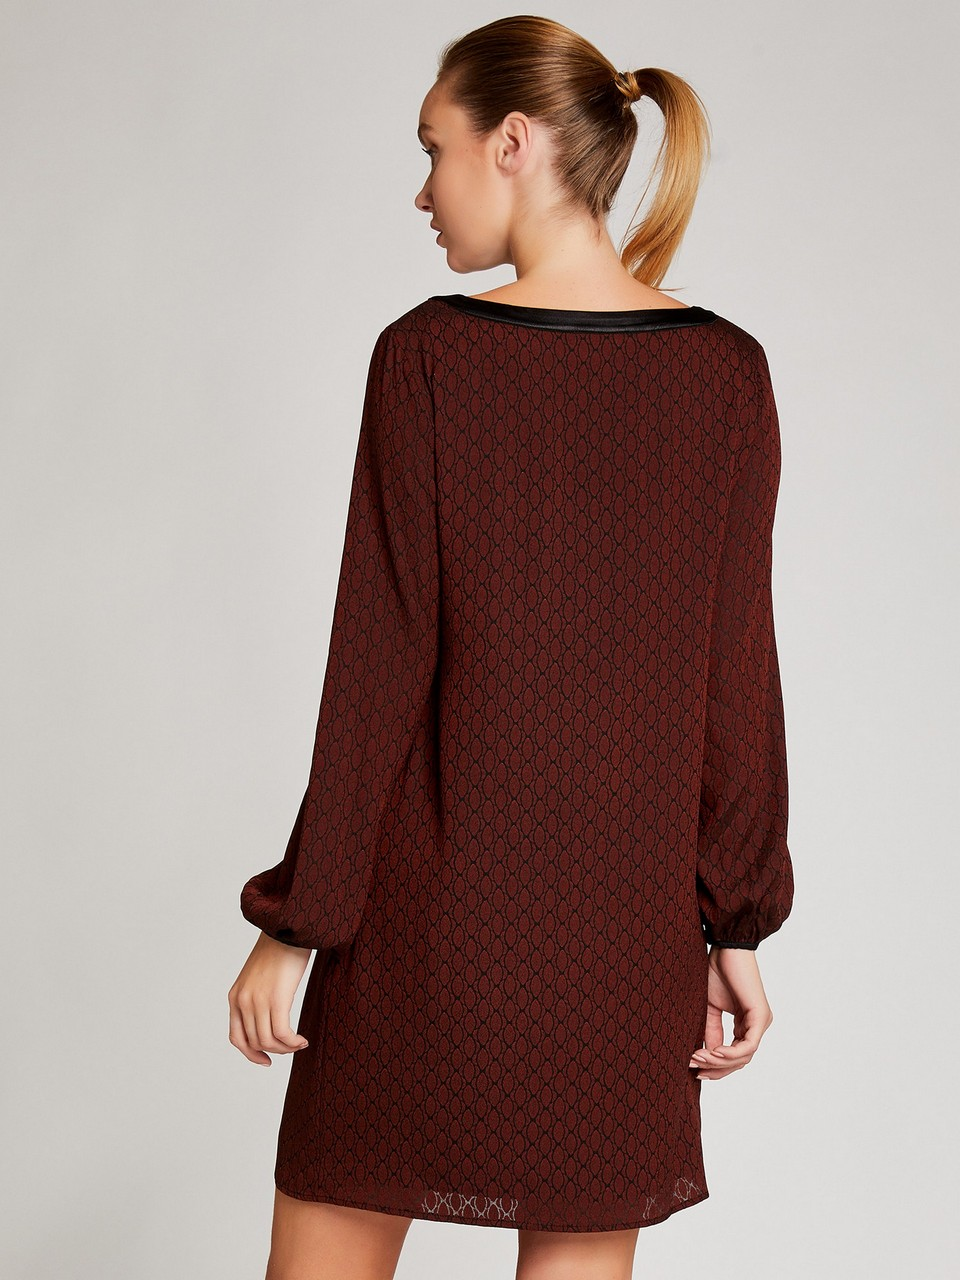 Boat Neck Long Sleeve Dress